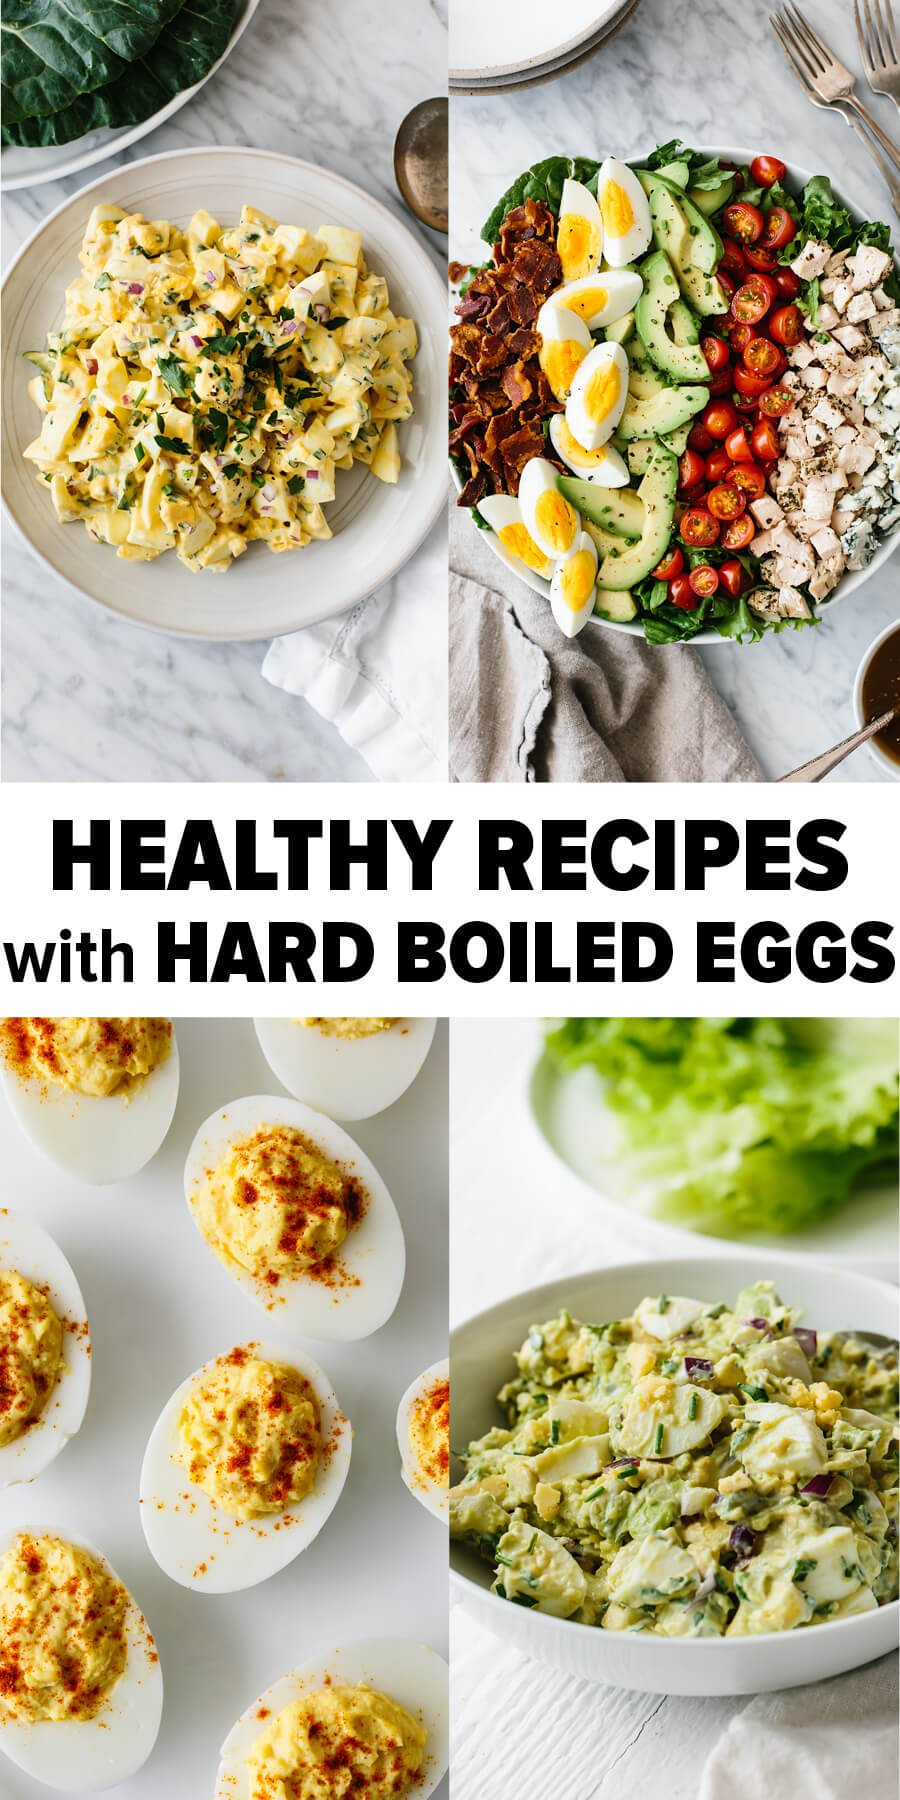 Several recipe photos with hard boiled eggs.